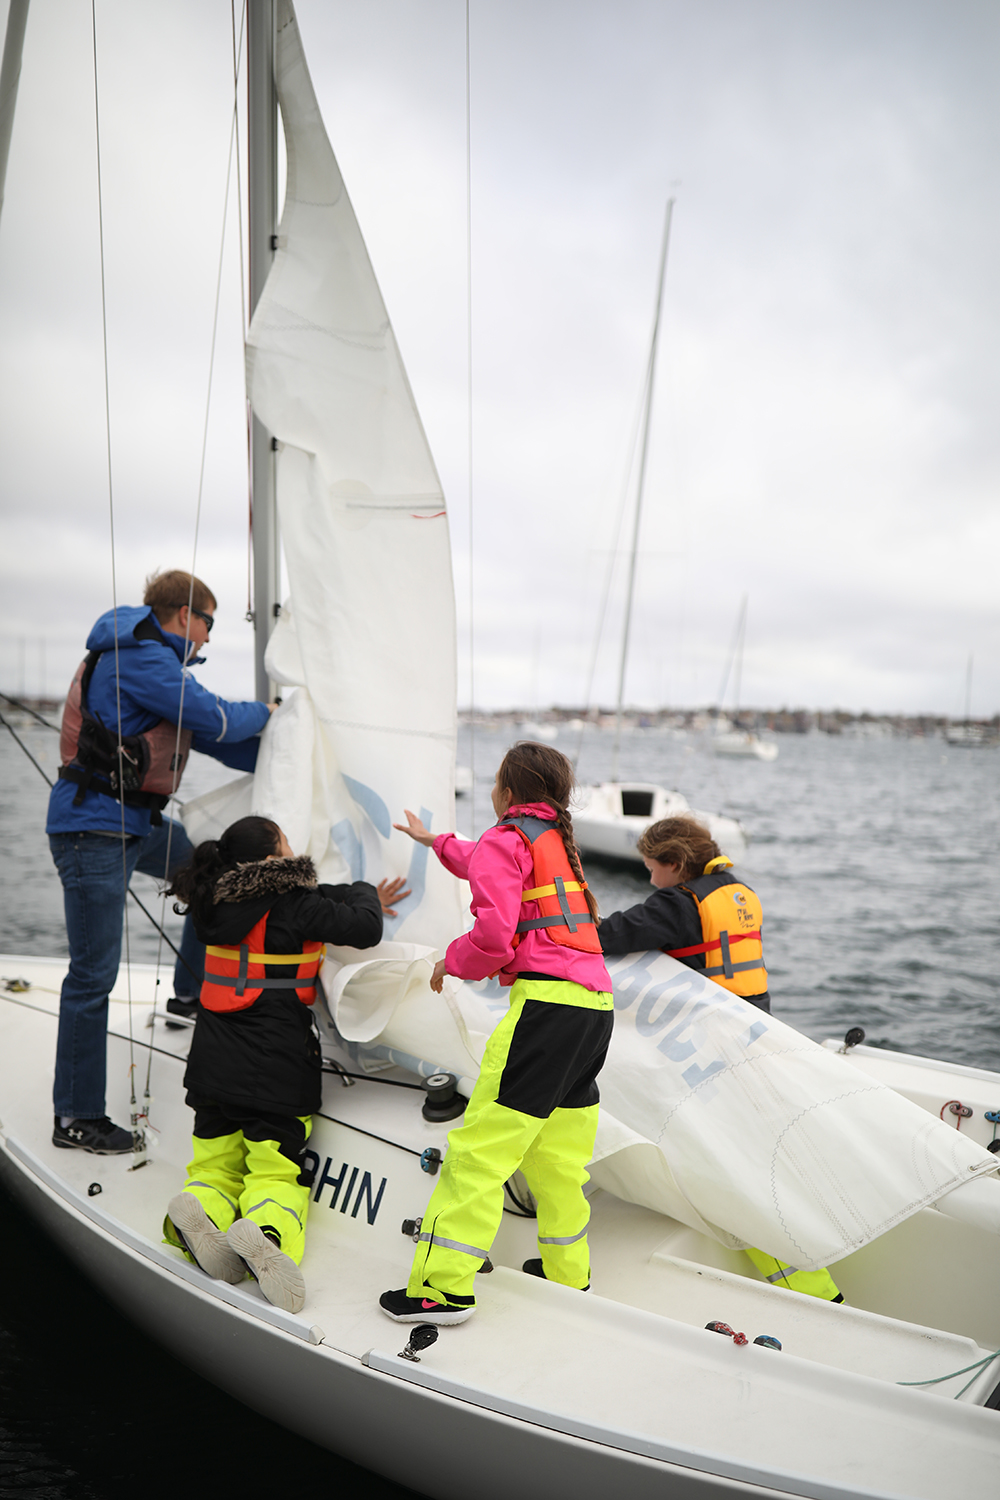 Students work together to drop the mainsail. © Maaike Bernstrom